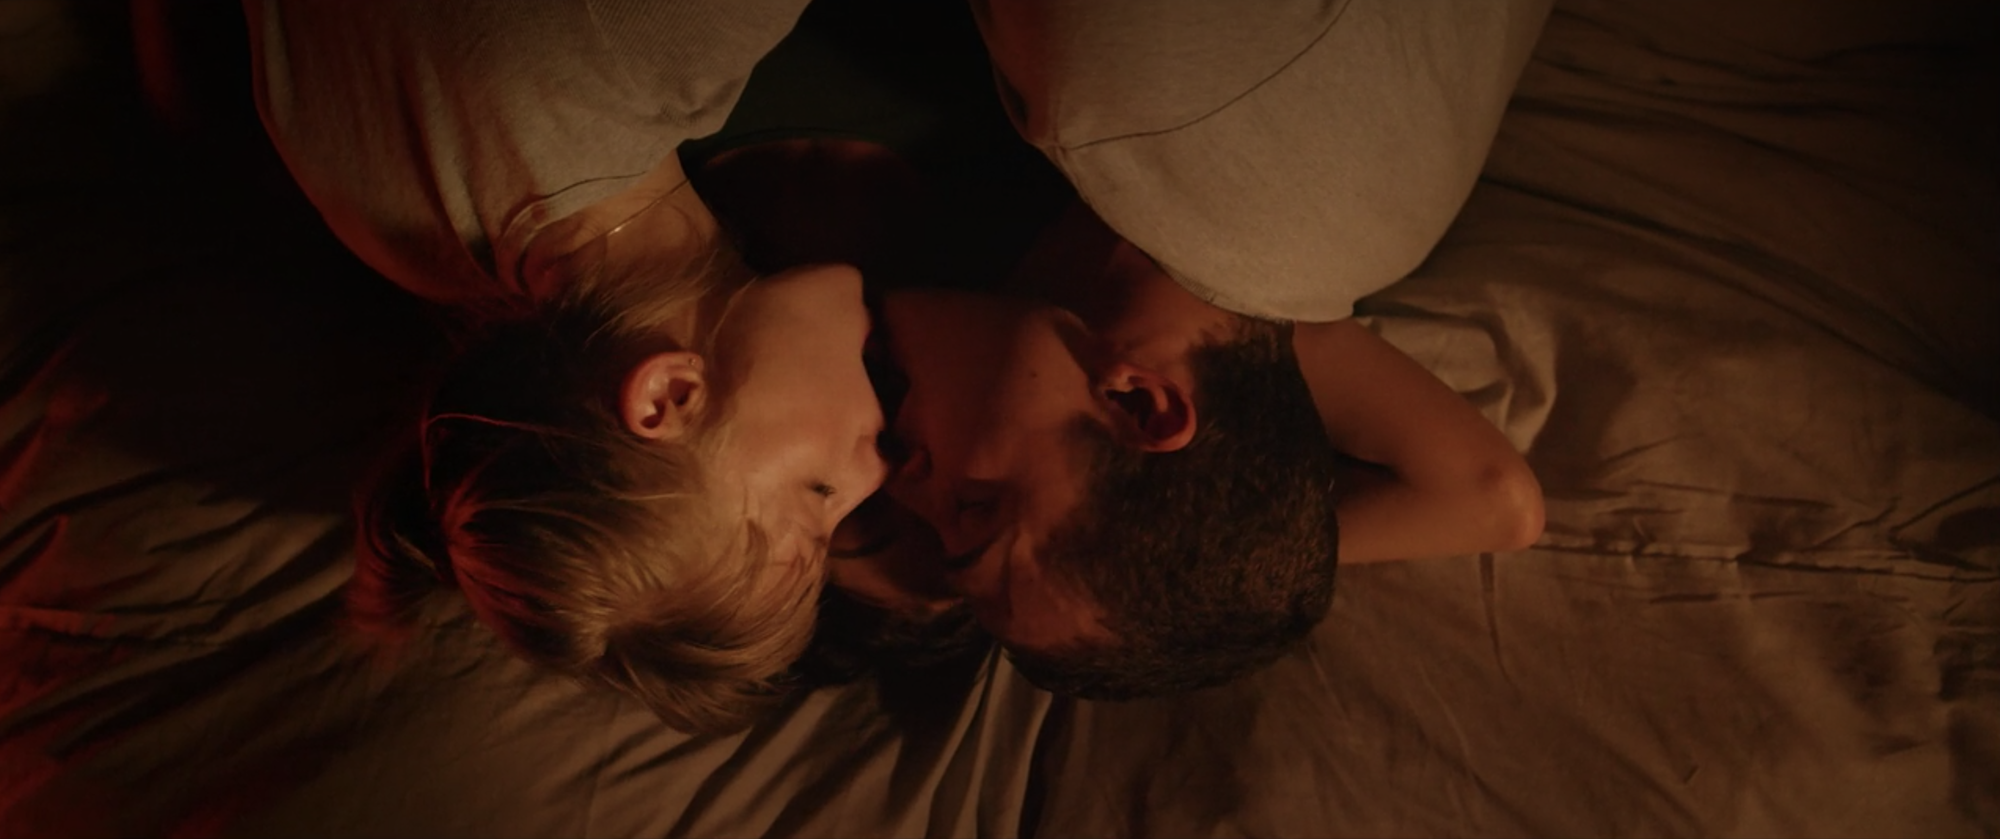 What are the most sexually graphic movies on Netflix?